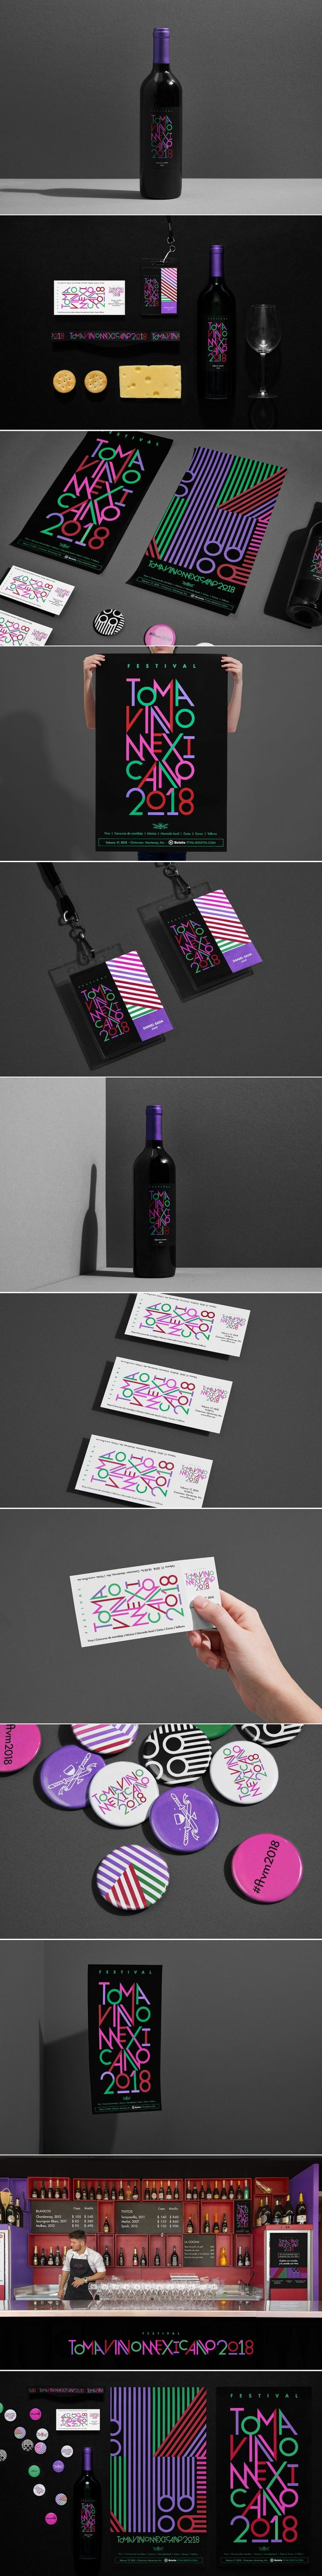 This Wine Festival Branding Is Not For the Pretentious — The Dieline | Packaging & Branding Design & Innovation News